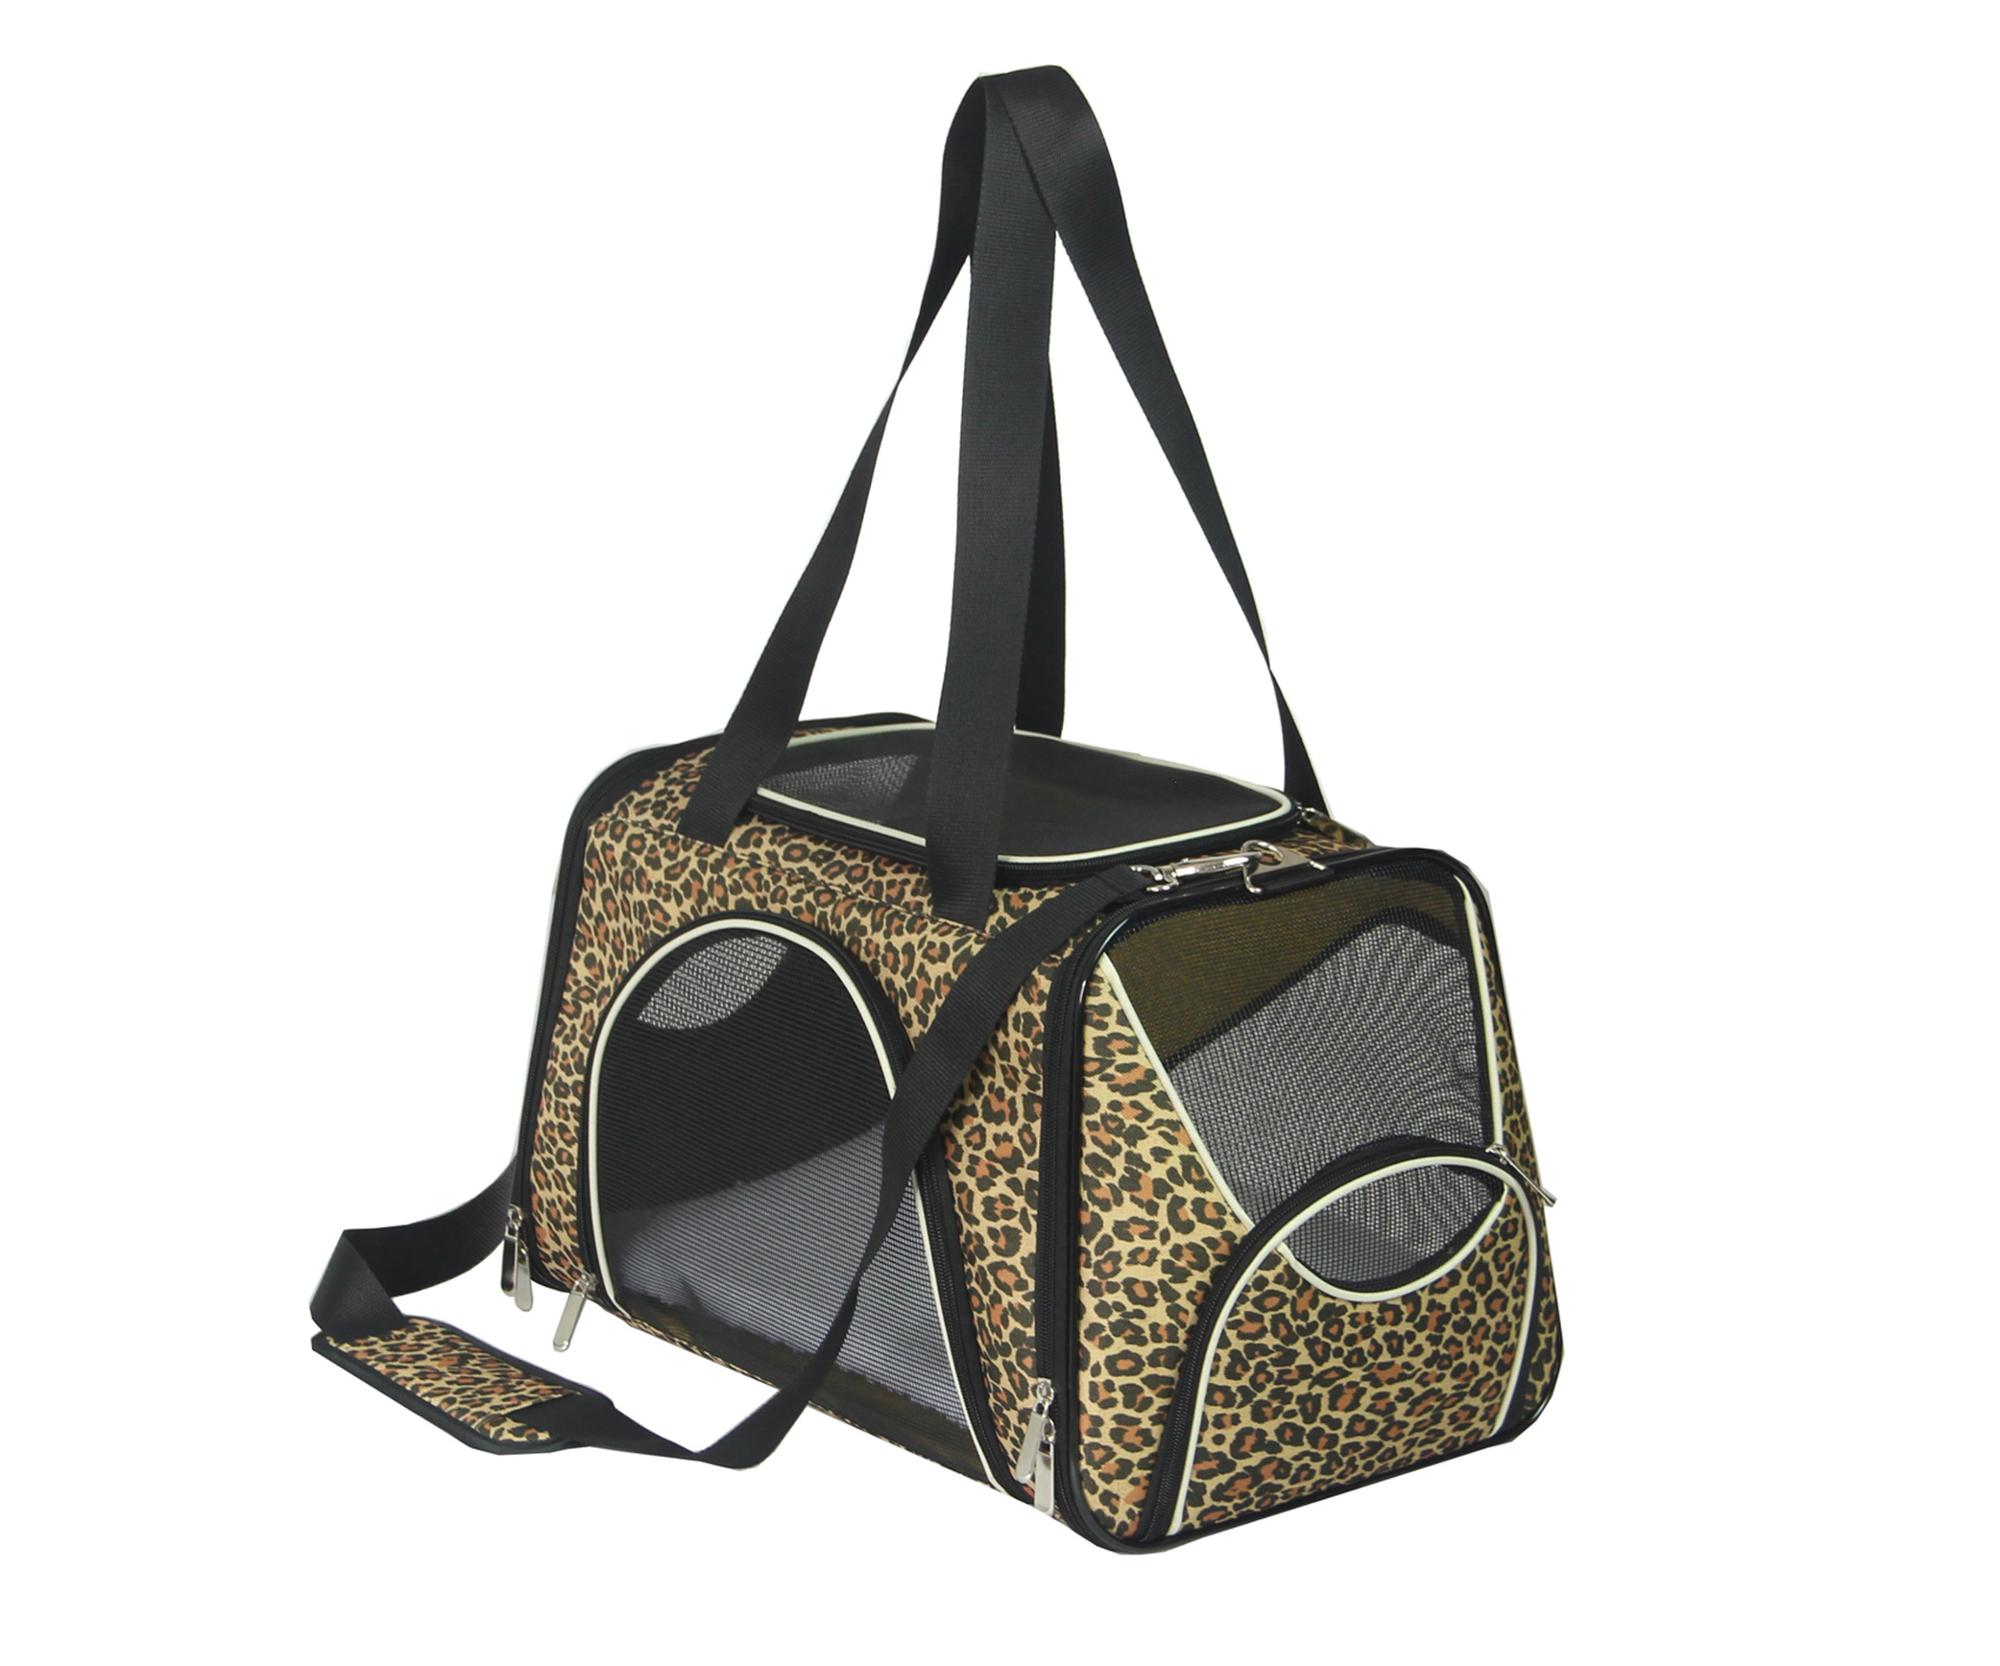 lightweight fabric Leopard print sofe side pet carrier bag for small animals dog cat